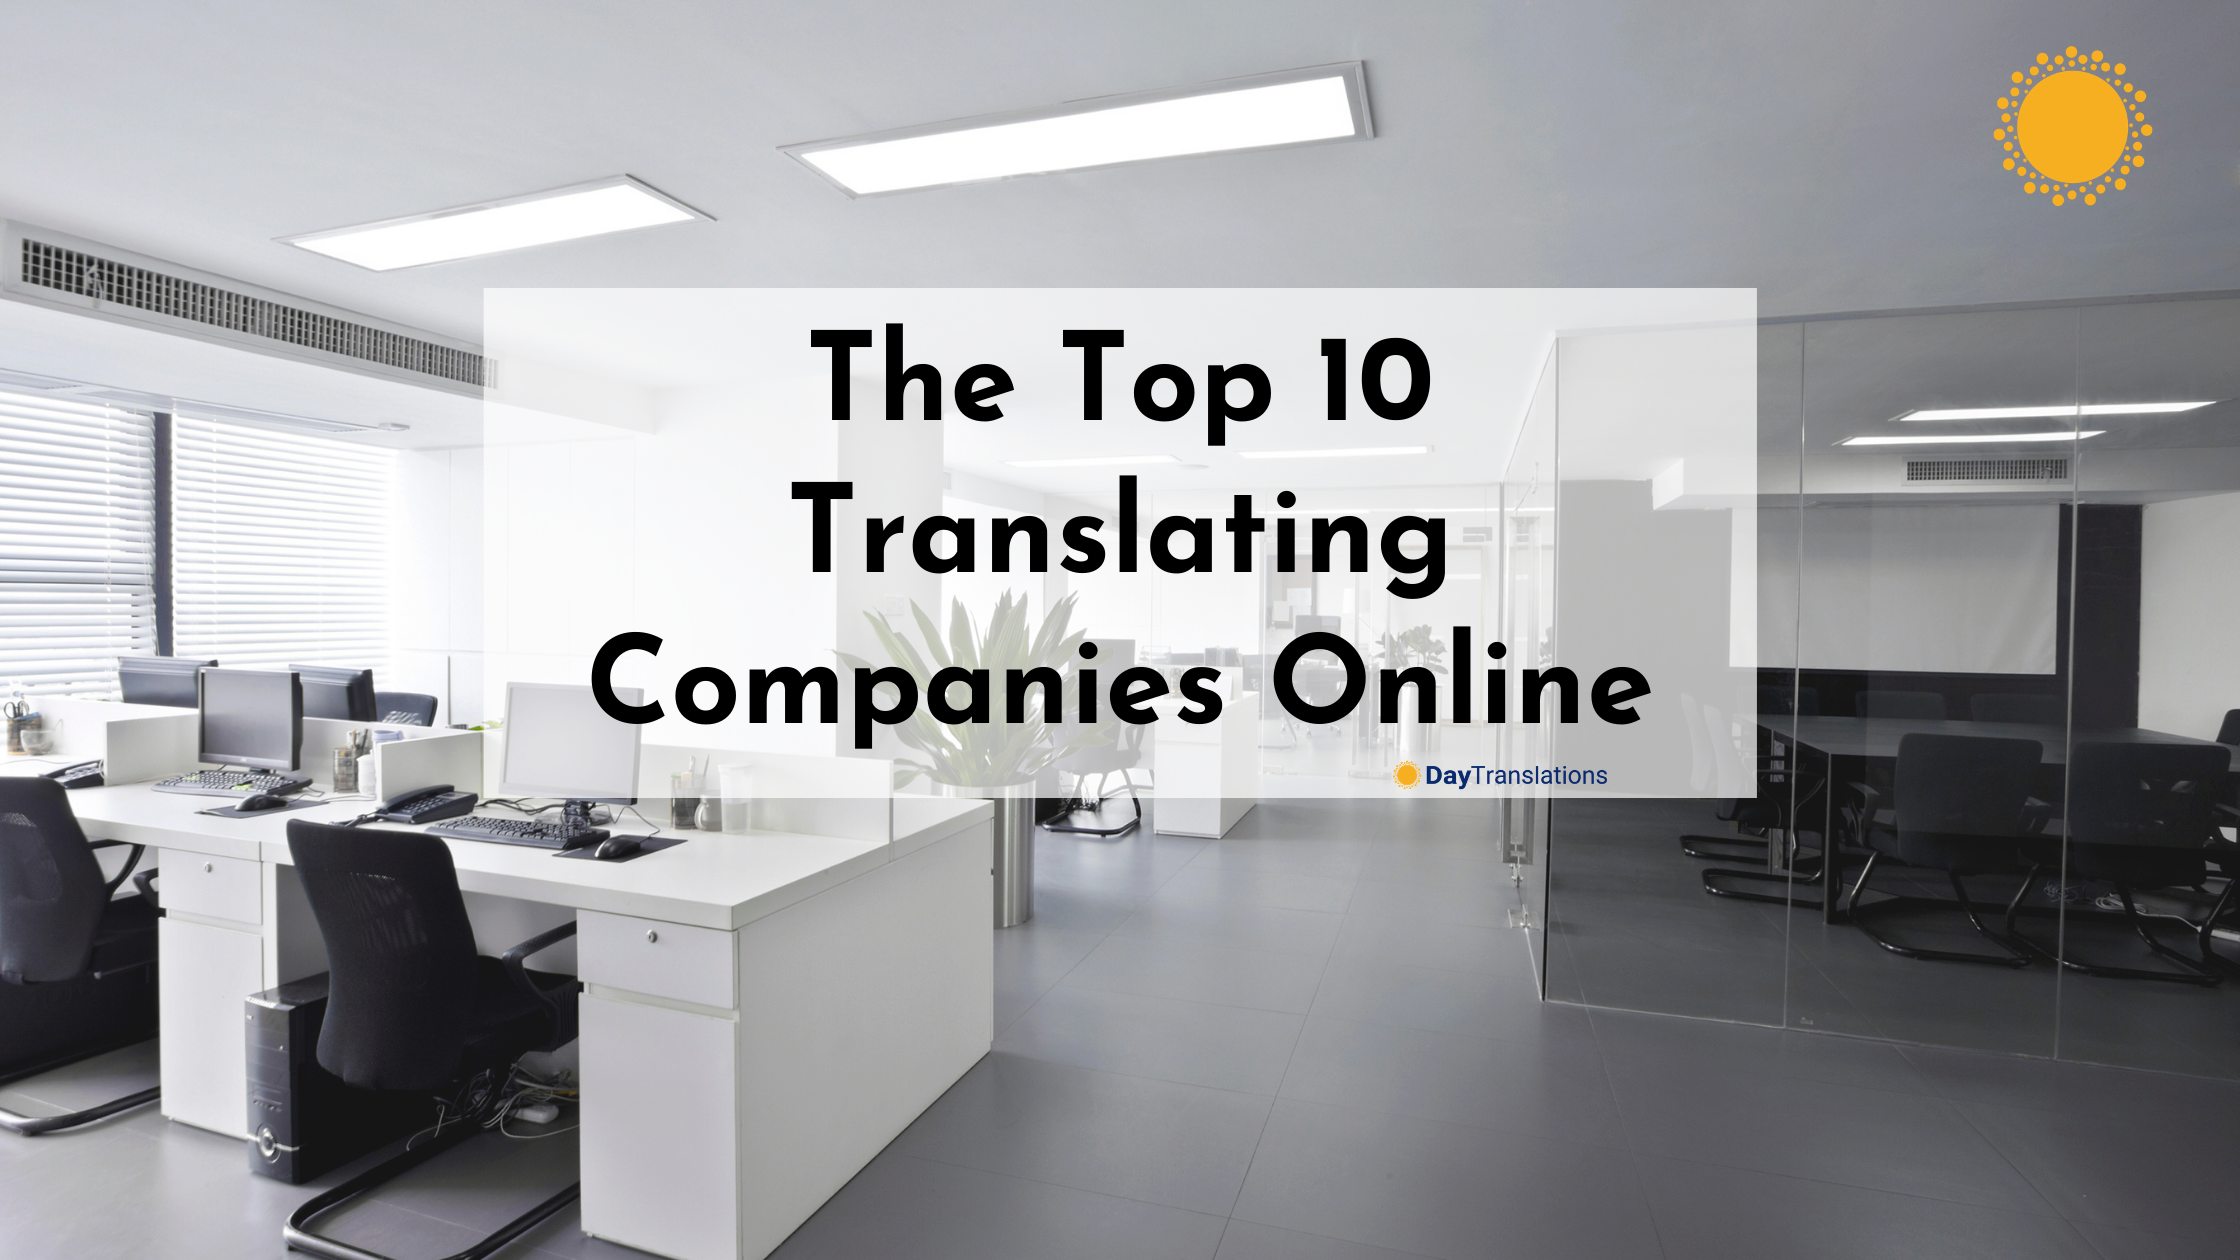 The Top 10 Translating Companies Online